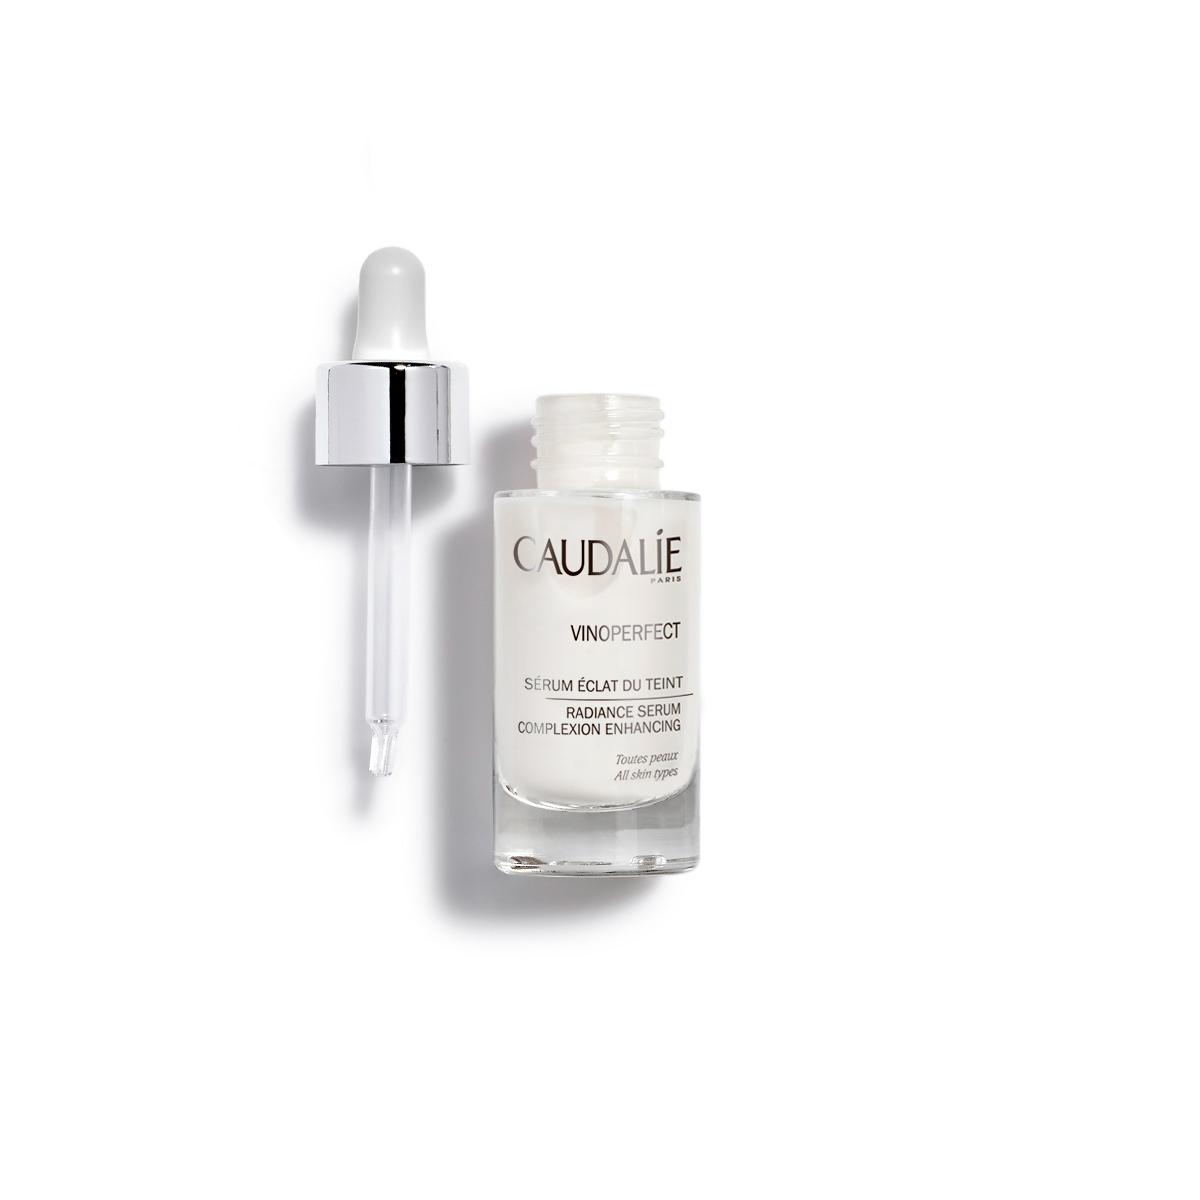 Vinoperfect Radiance Serum | CAUDALIE® The brightening solution